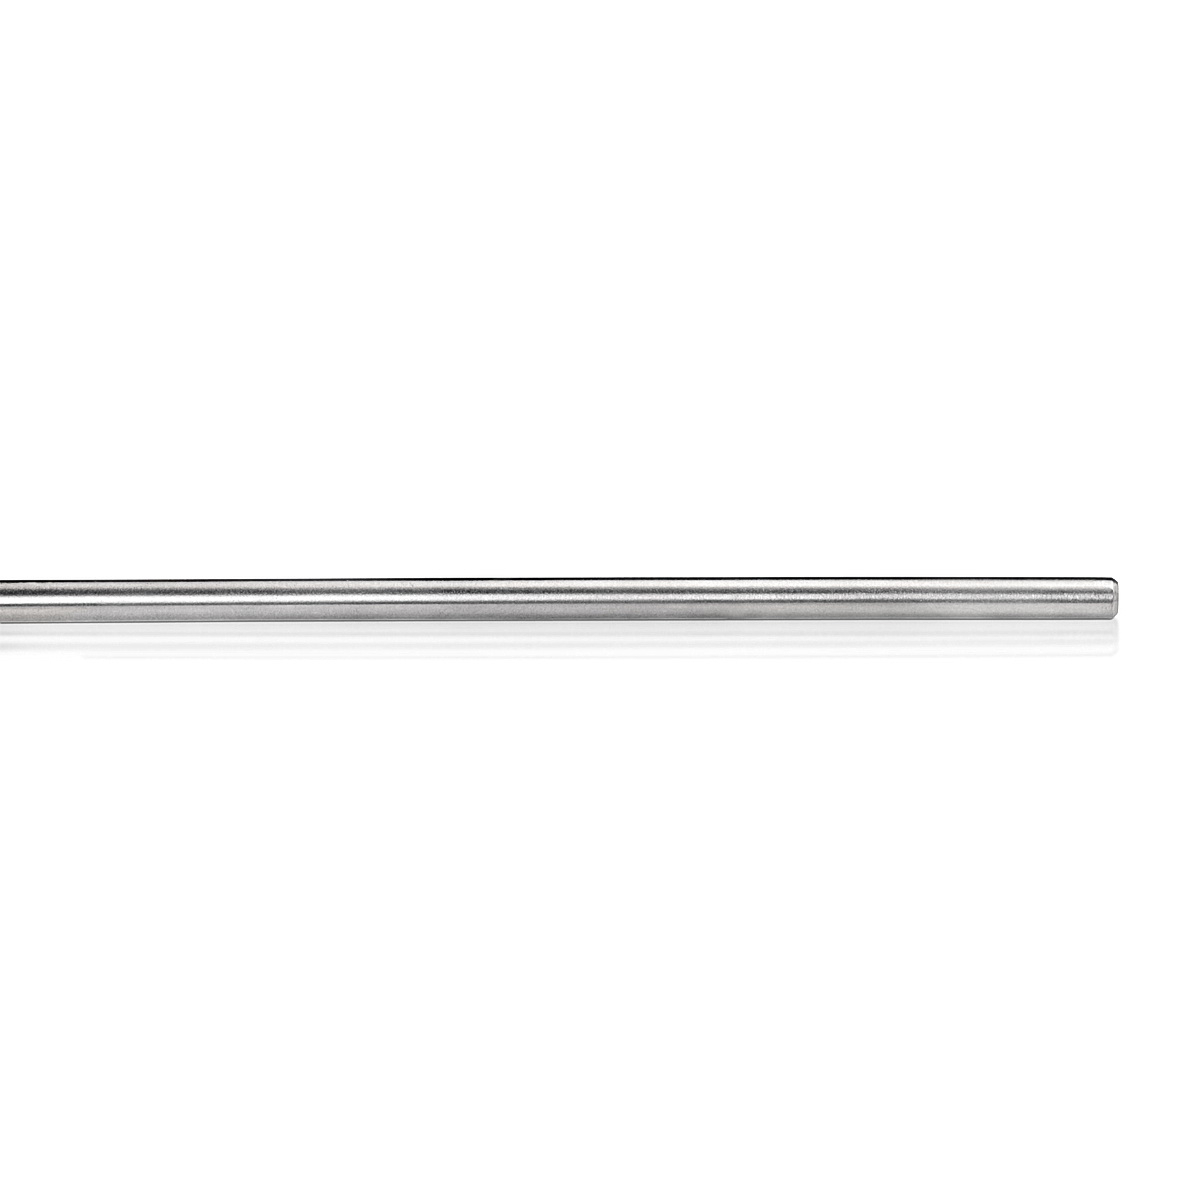 1/4'' Stainless Steel Rod (Length: 4' 11'')